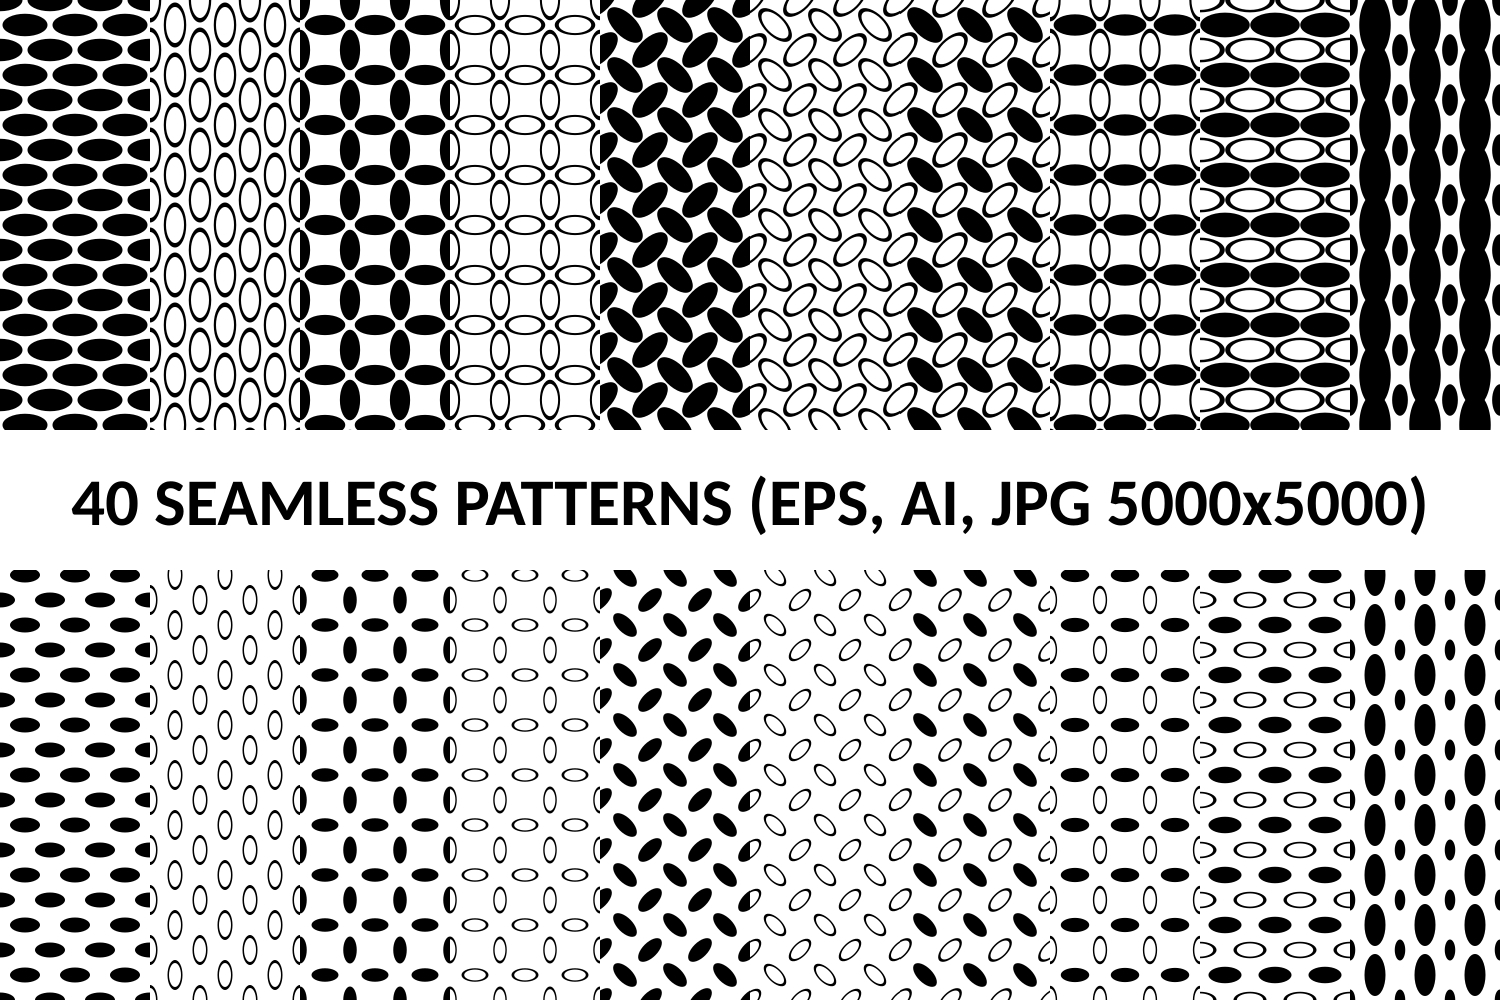 40 Seamless Ellipse Patterns (AI, EPS, JPG 5000x5000) example image 1